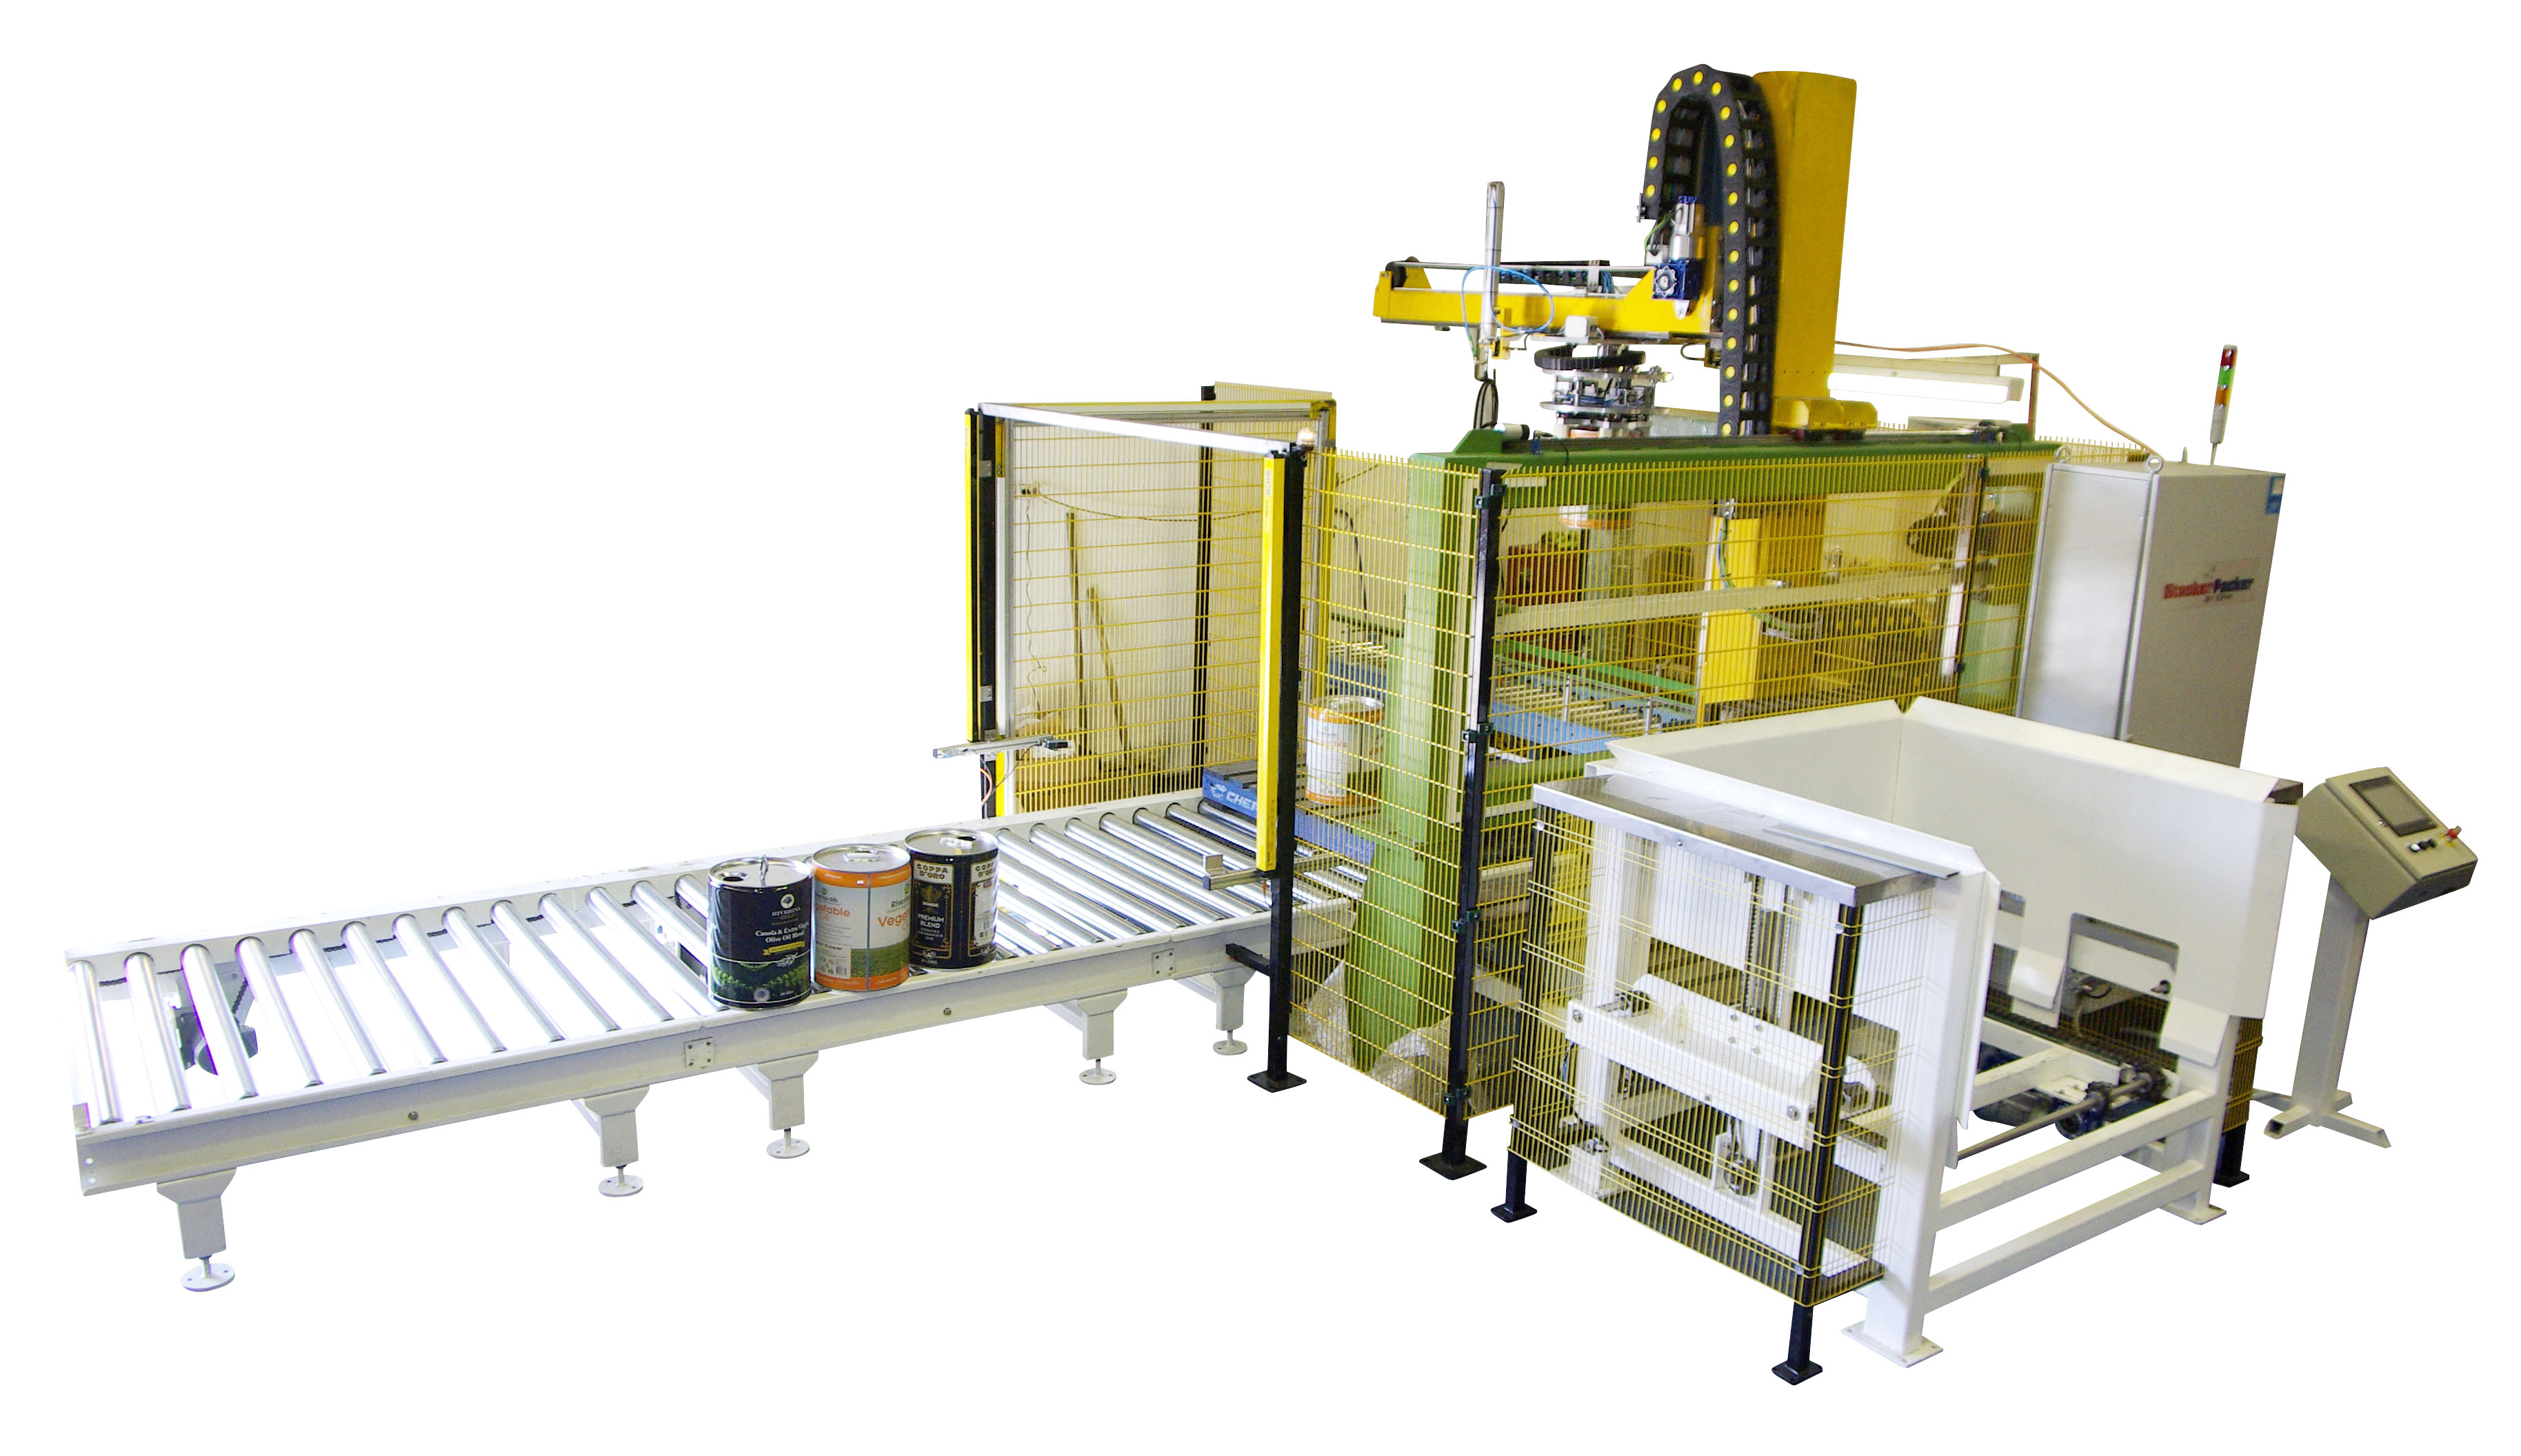 - IOPAK StackerPacker Palletiser